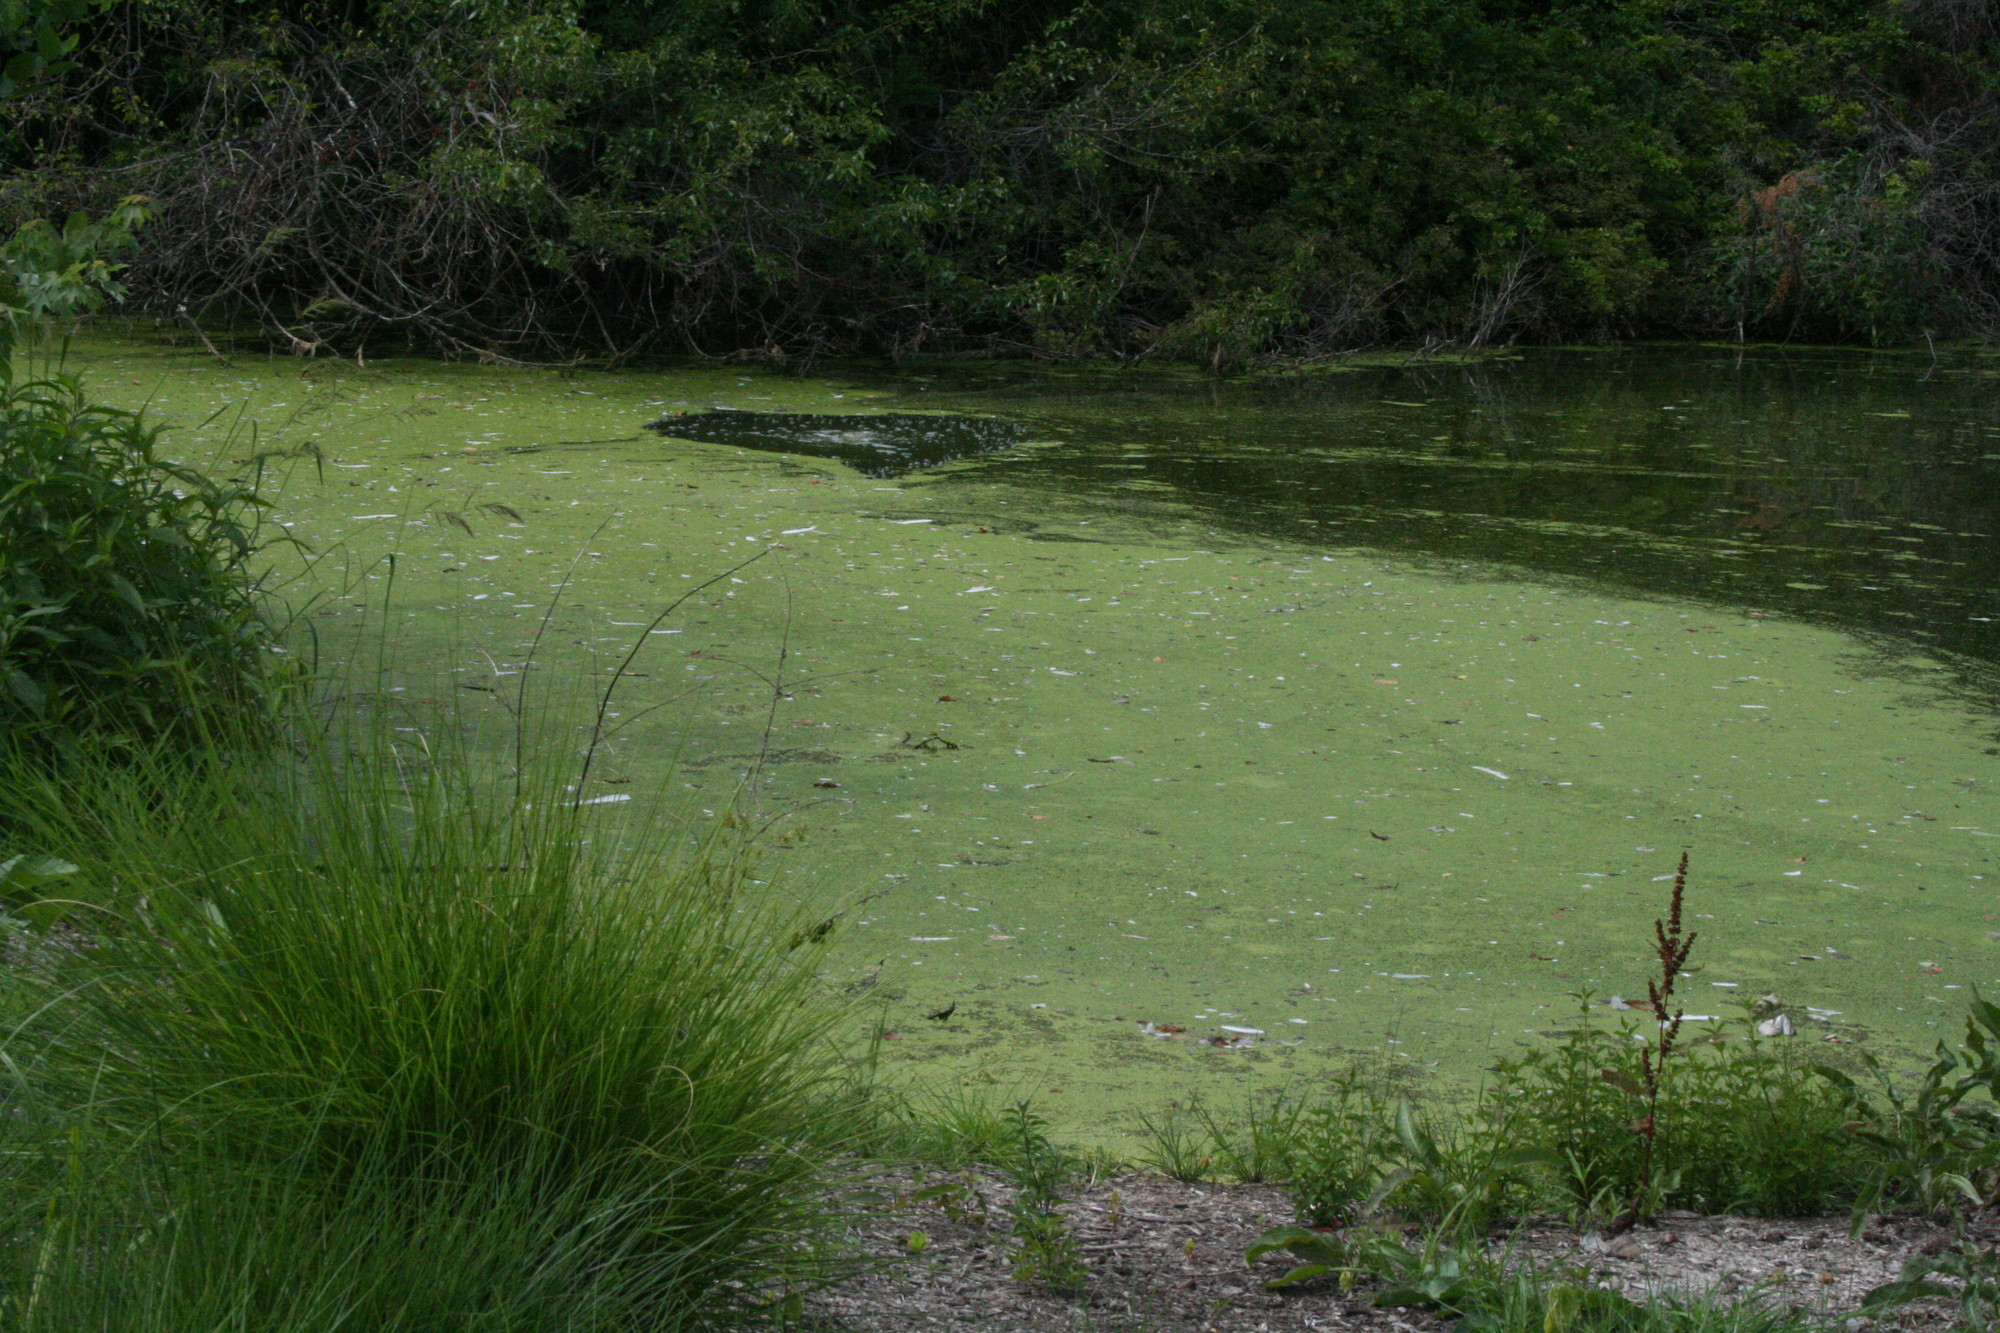 The villages of Hewlett Harbor and Hewlett Bay Park seek to end the problem of floating algae and muck in Willow Pond by treating them with enzymes.